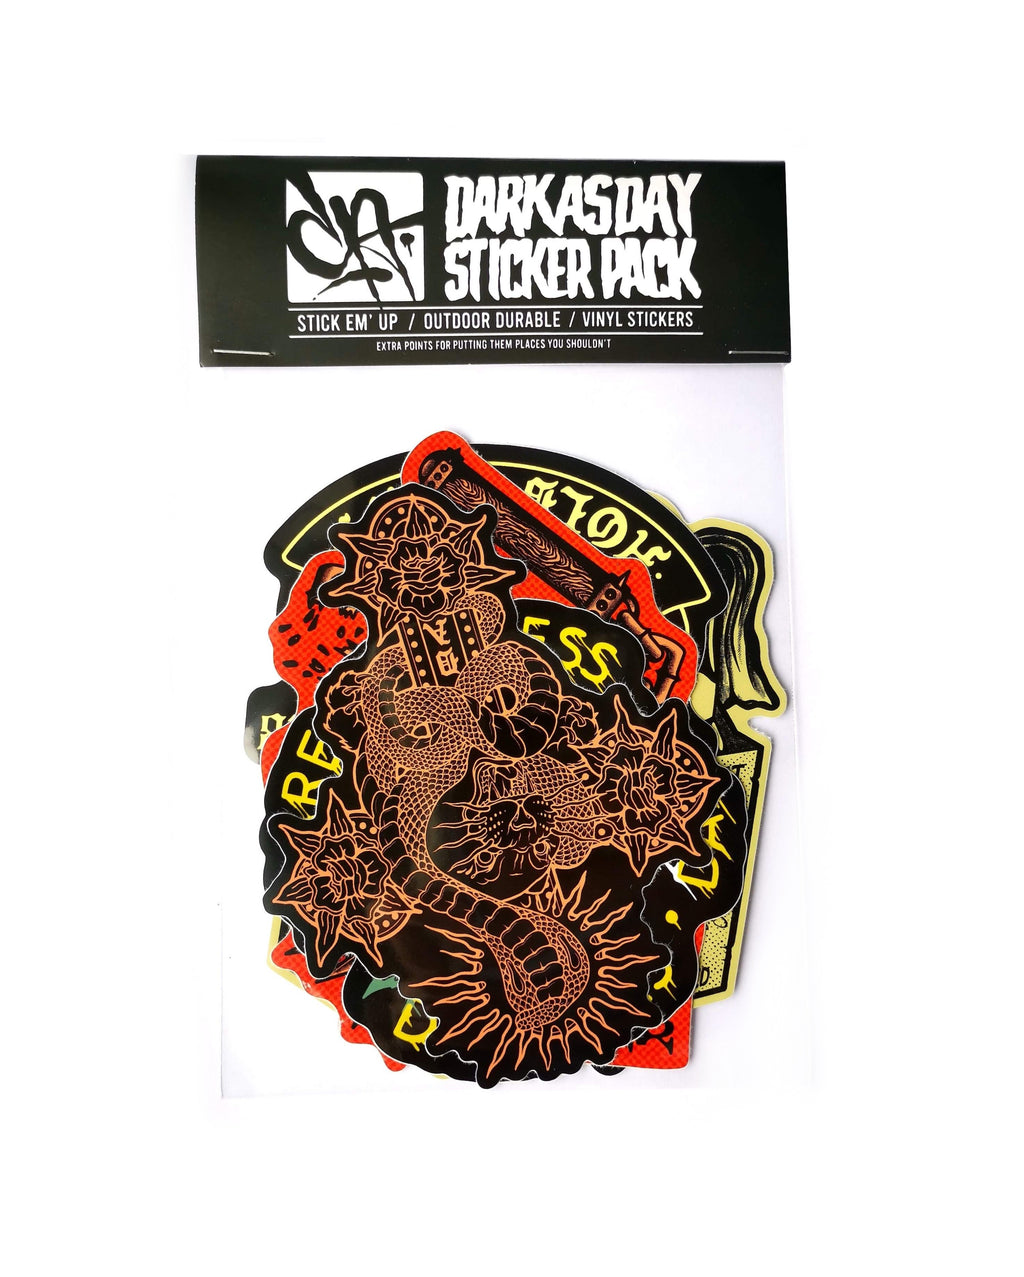 Dark As Day Sticker Pack